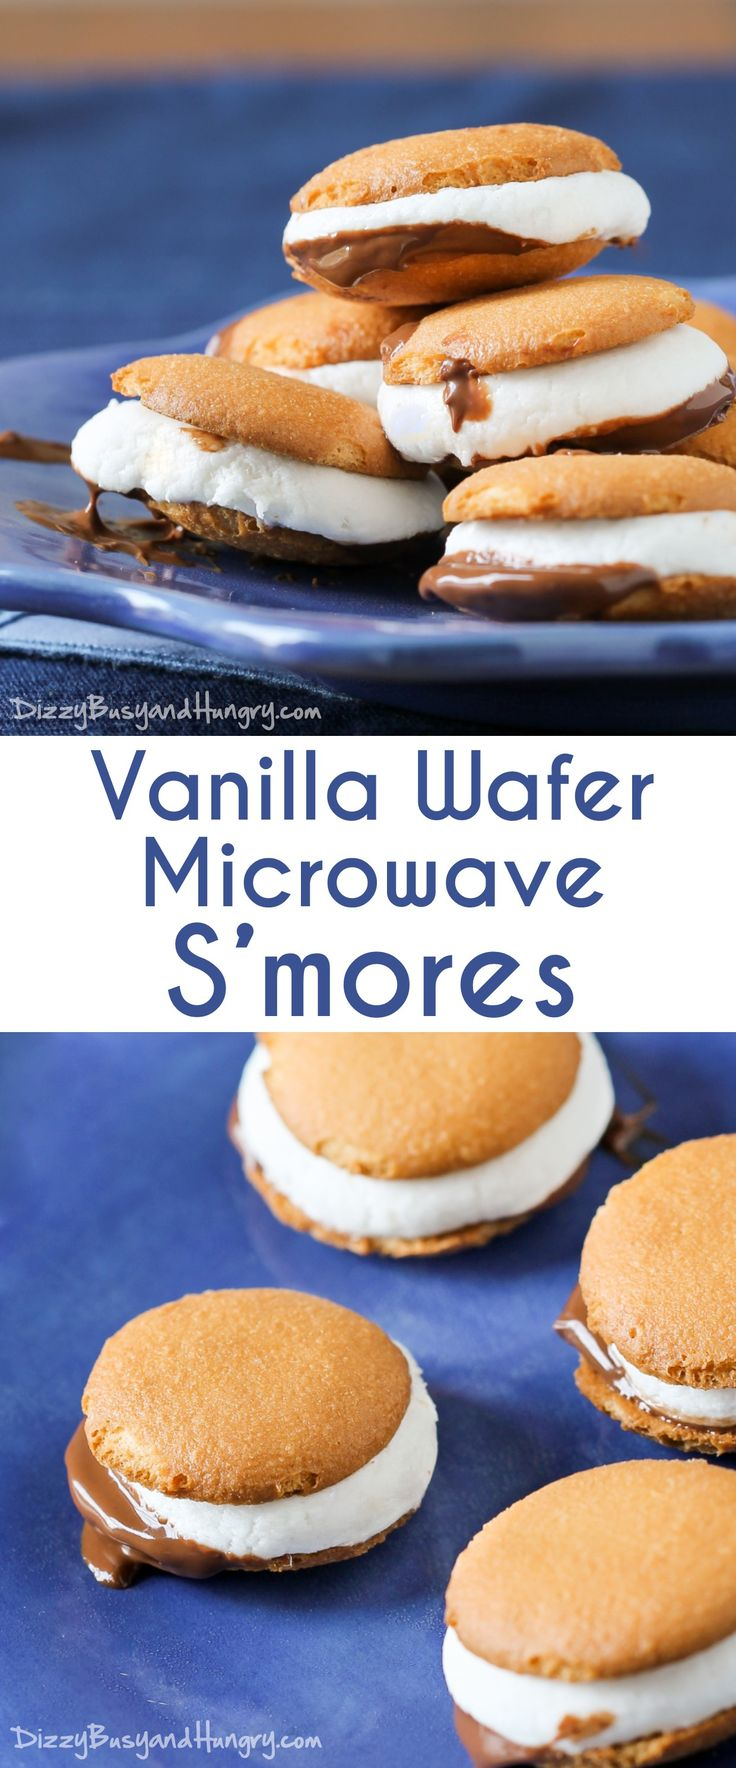 Vanilla Wafer Microwave S'mores | DizzyBusyandHungry.com - Cute, two-bite s'mores you can make in your kitchen in less than 5 minutes! #TriplePFeature